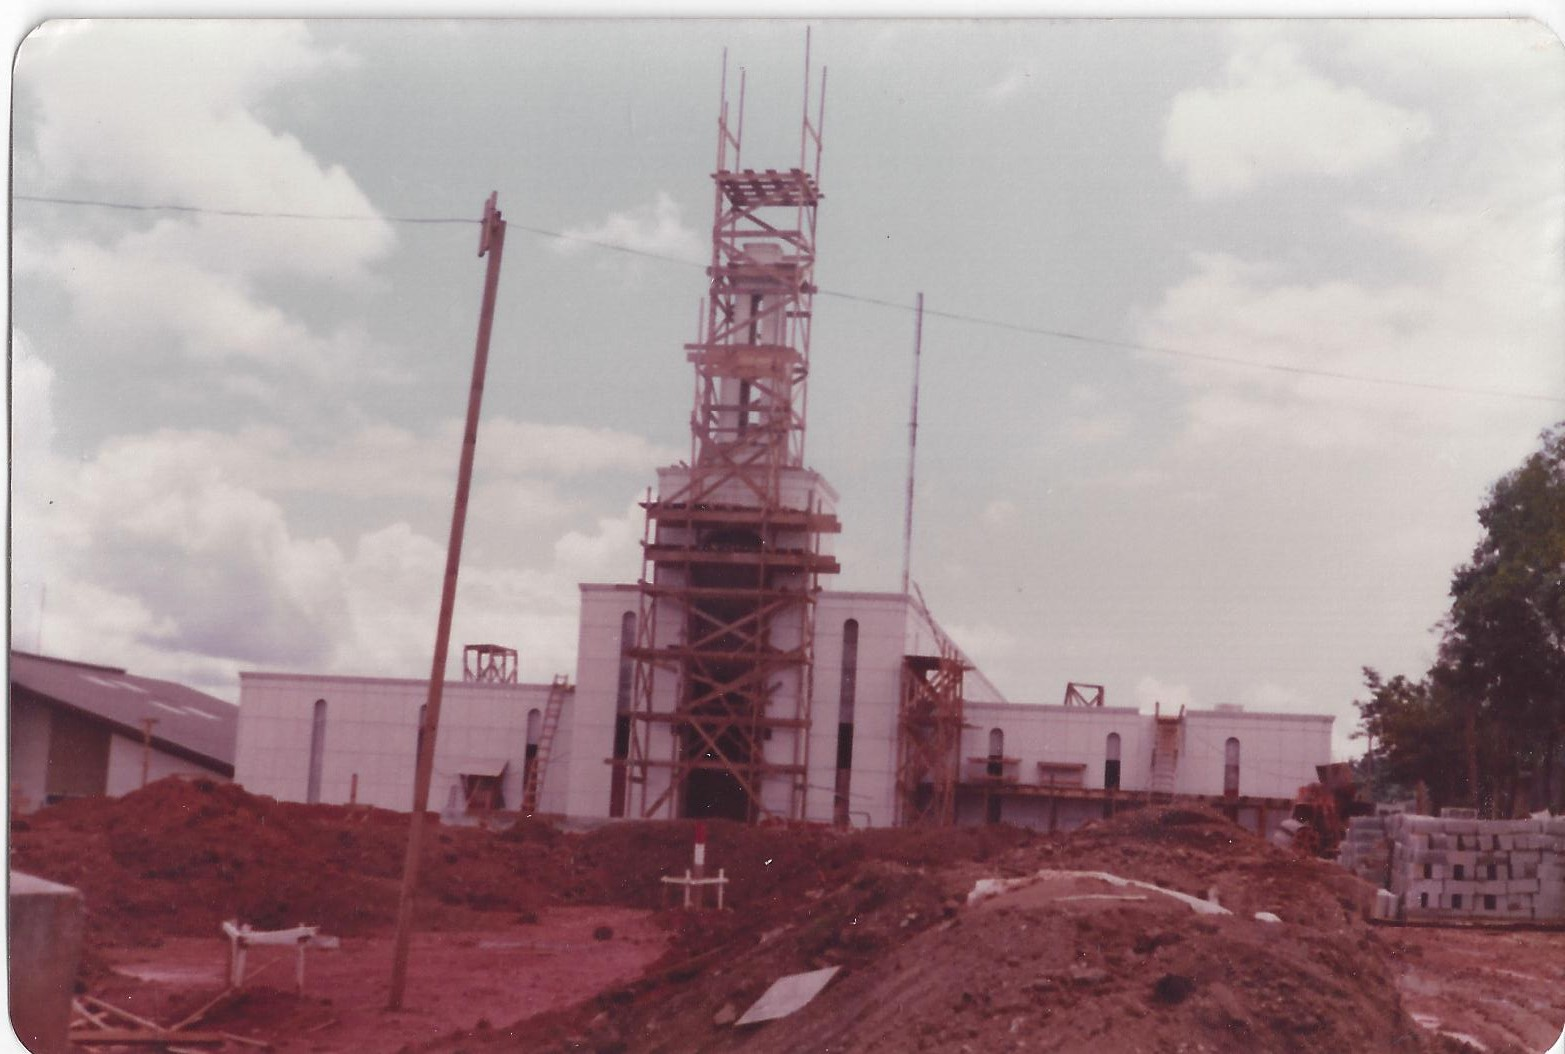 A photo of the LDS Church's São Paulo Temple during construction in São Paulo, Brazil between 1976 and 1978.